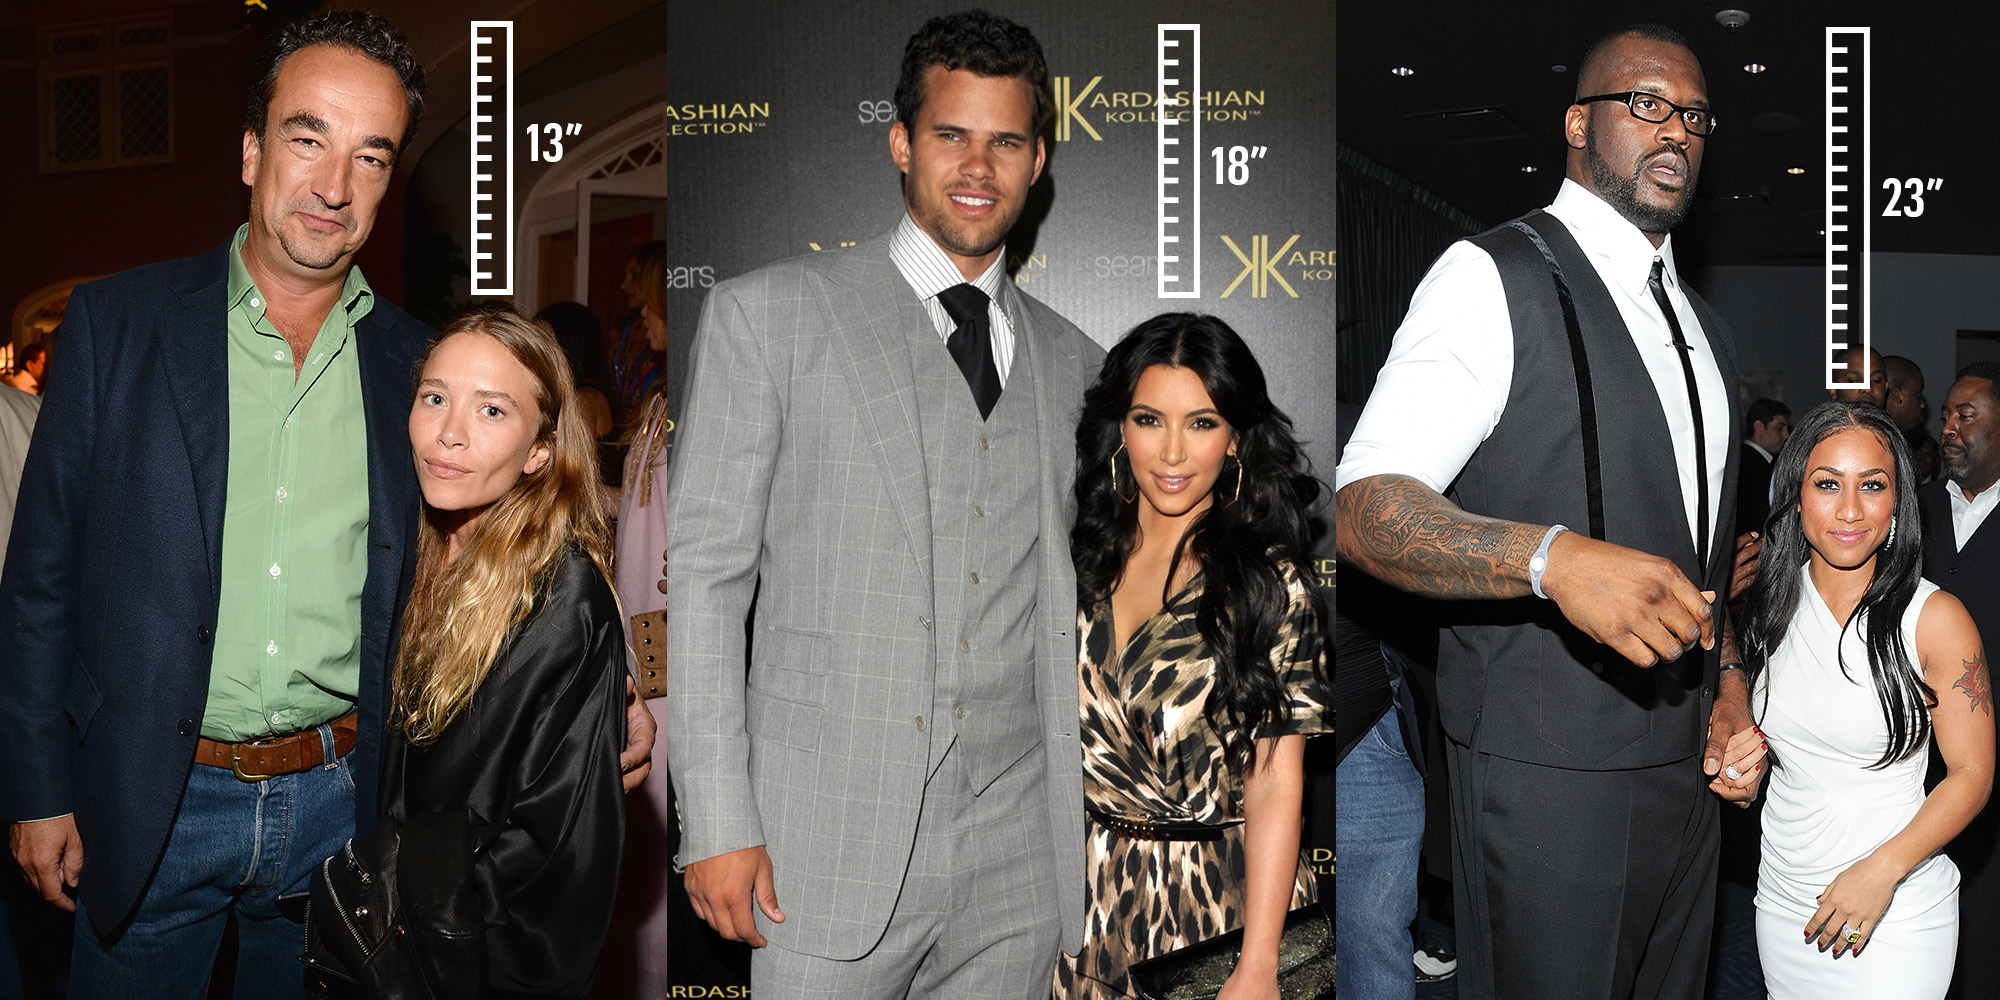 20 Celebrity Couples With a Major Height Difference